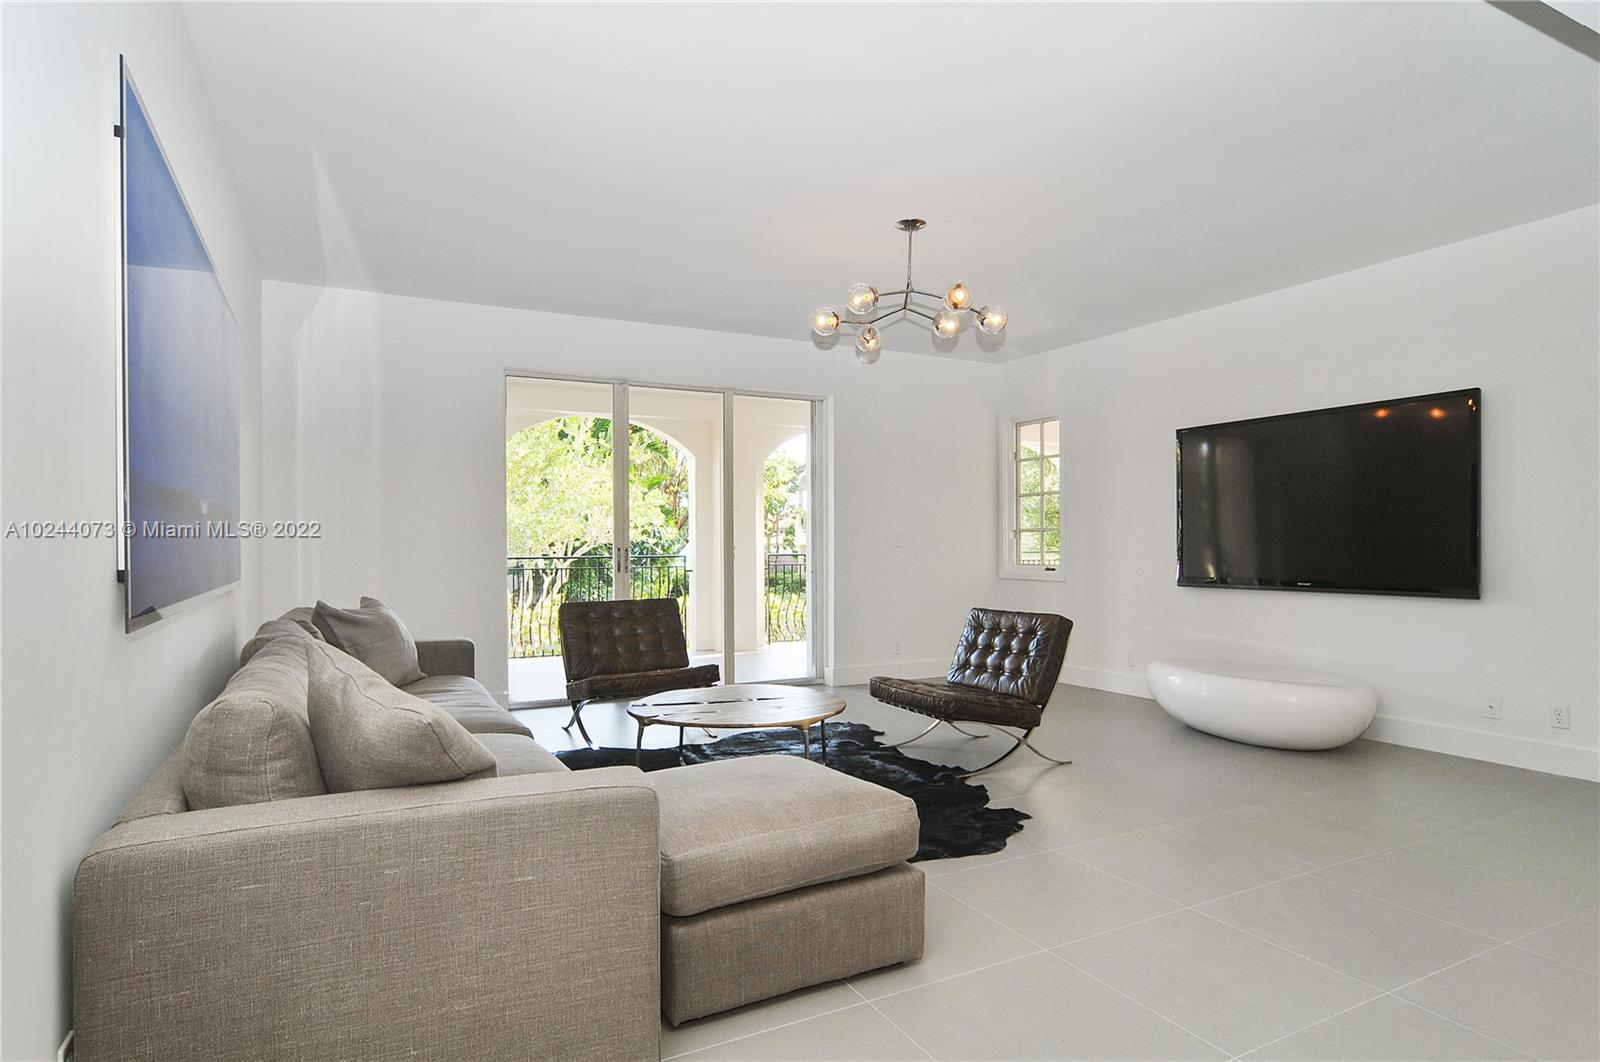 19114  Fisher Island Dr #19114 For Sale A10244073, FL